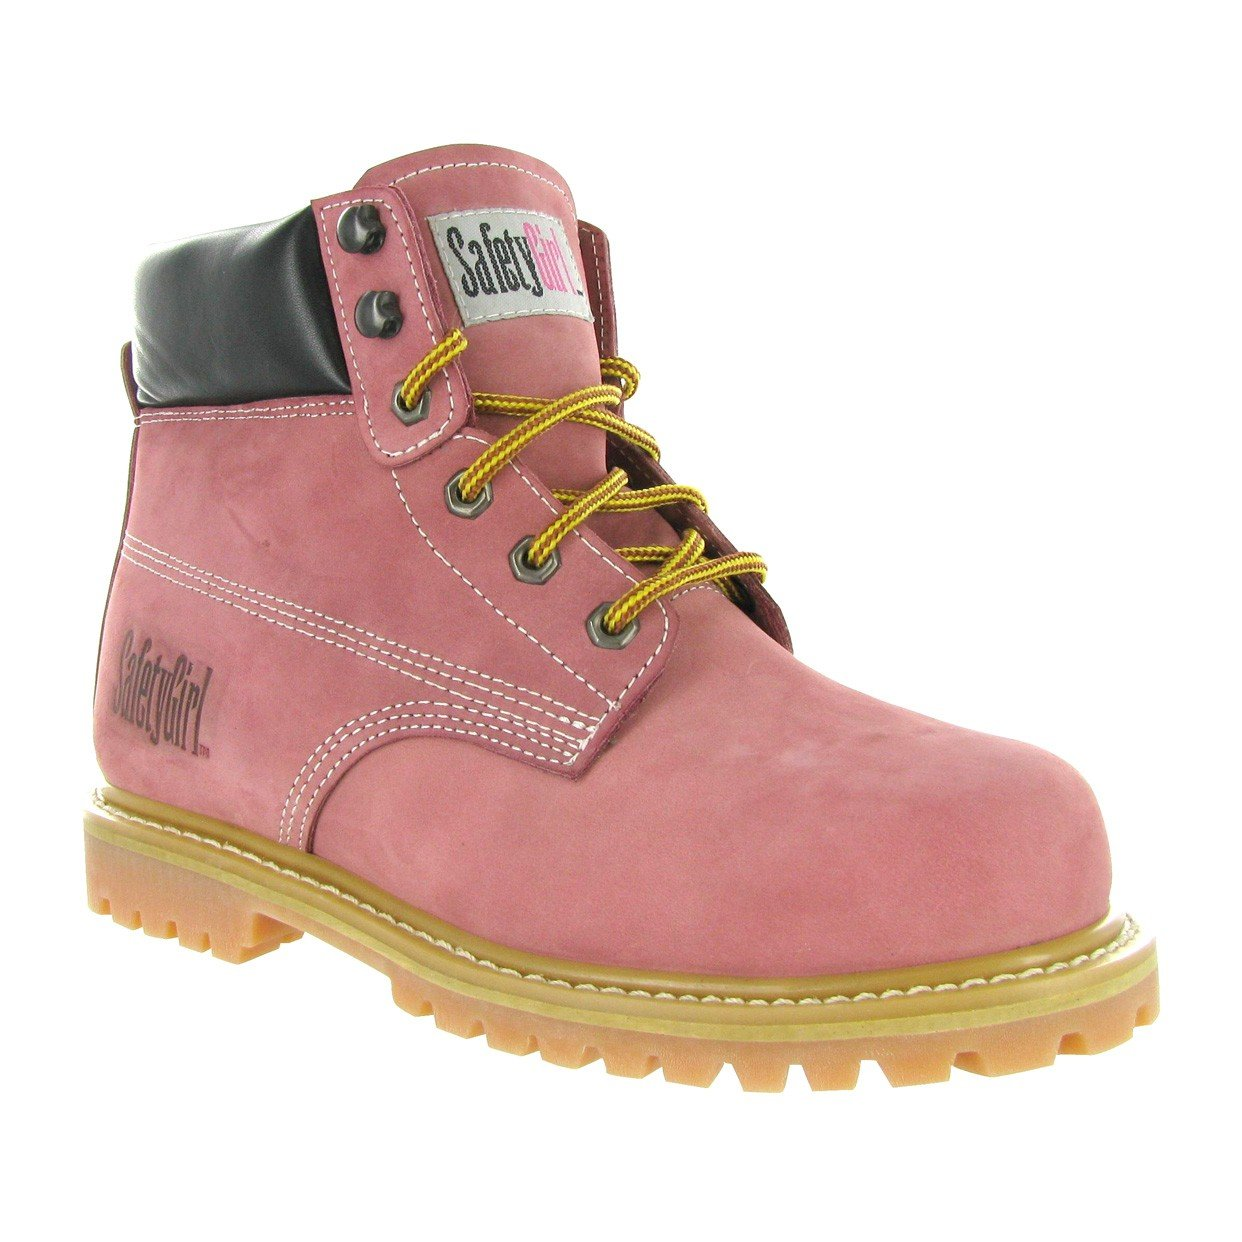 Safety Girl GS003-Lt Pink-9W Steel Toe Work Boots - Light Pink - 9W, English, Capacity, Volume, Leather, 9W, Pink ()